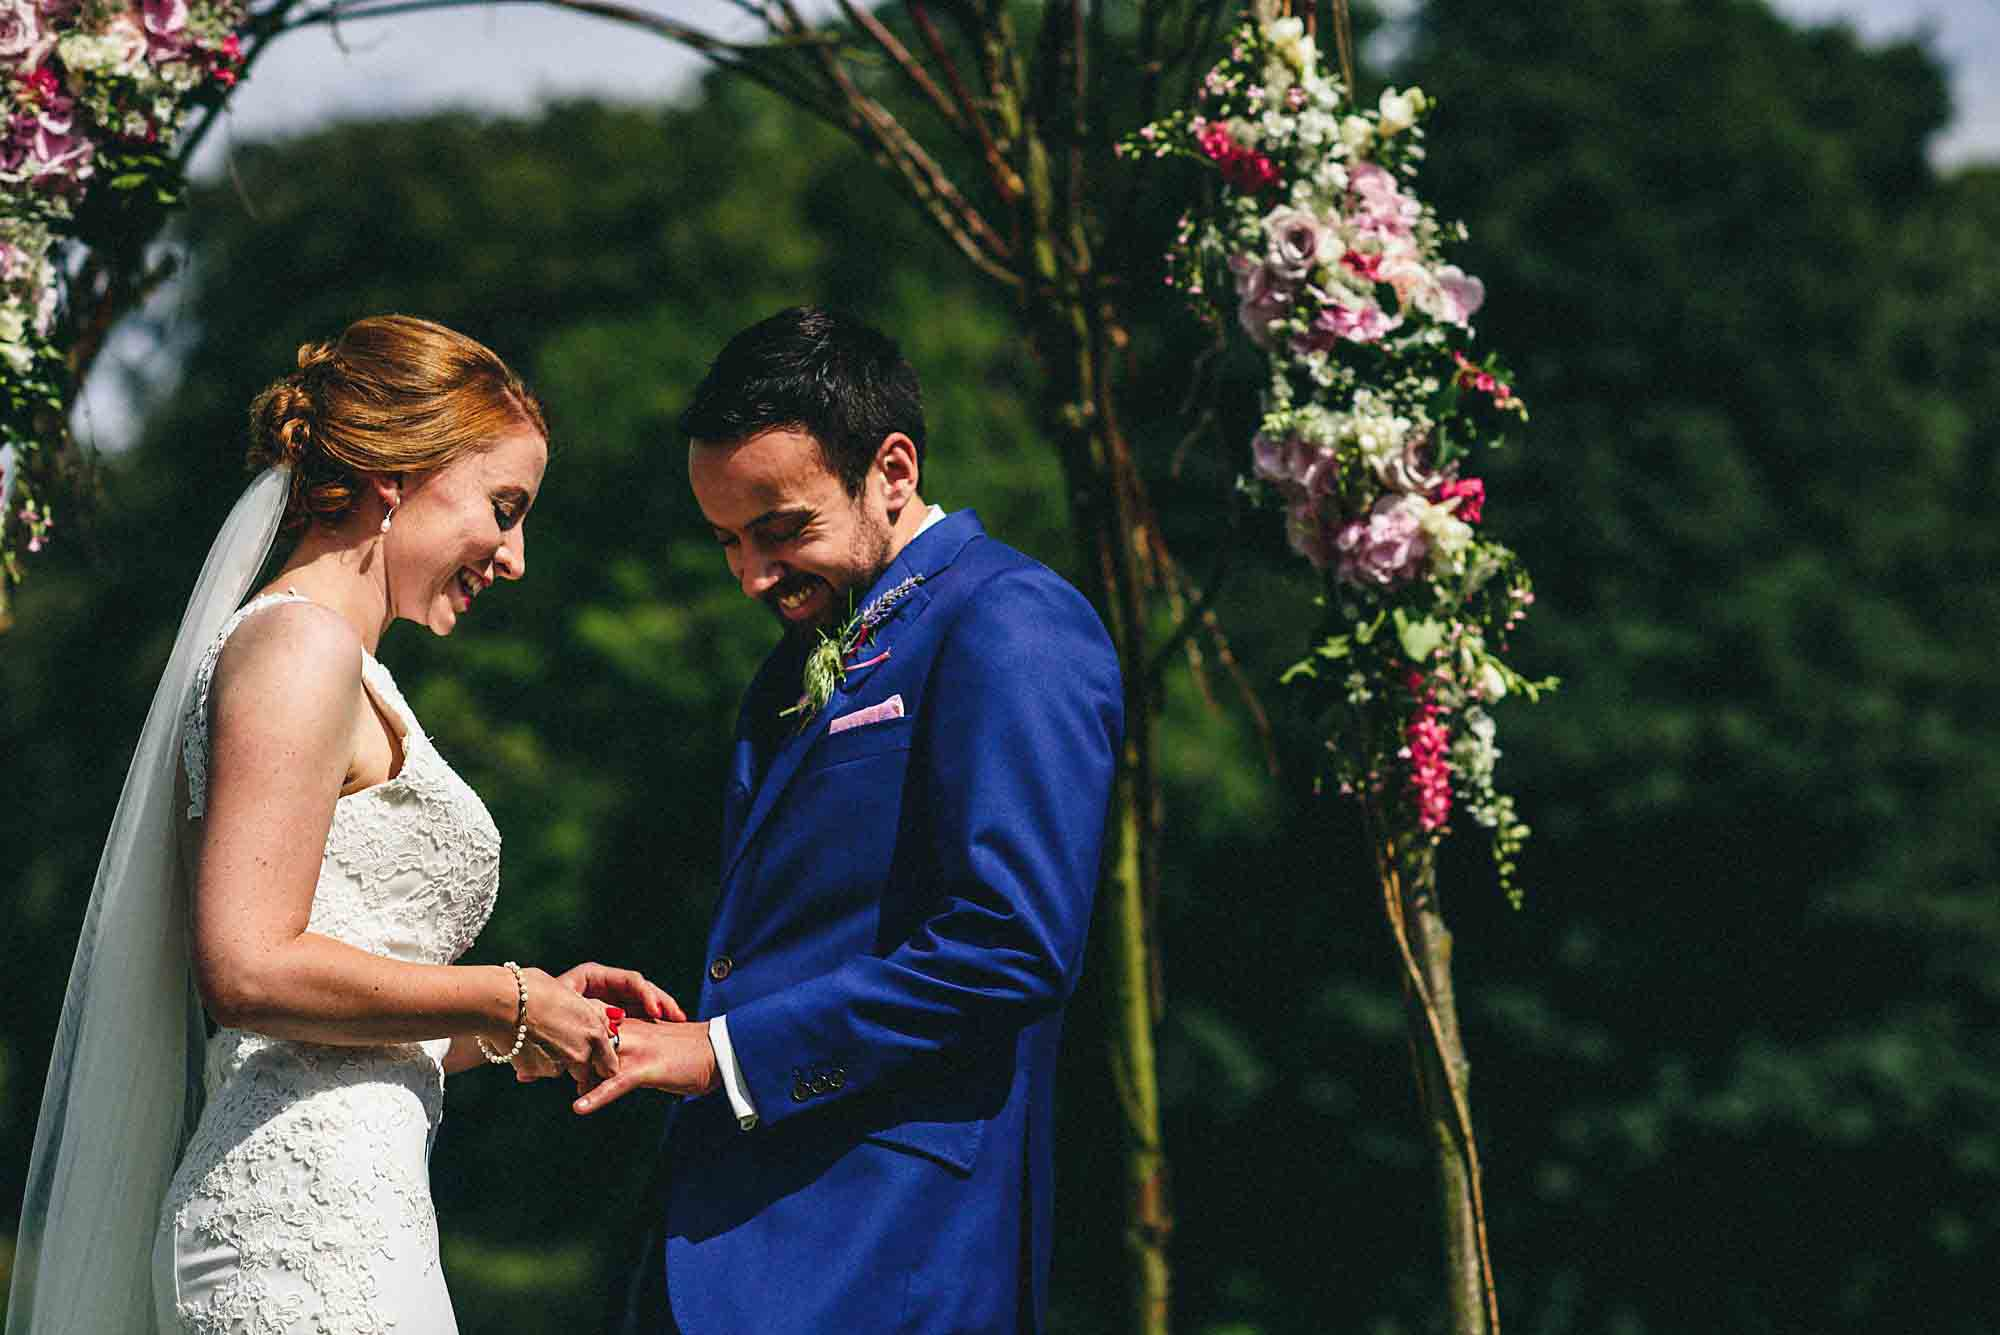 Narborough Hall Gardens wedding photography 25 Completed